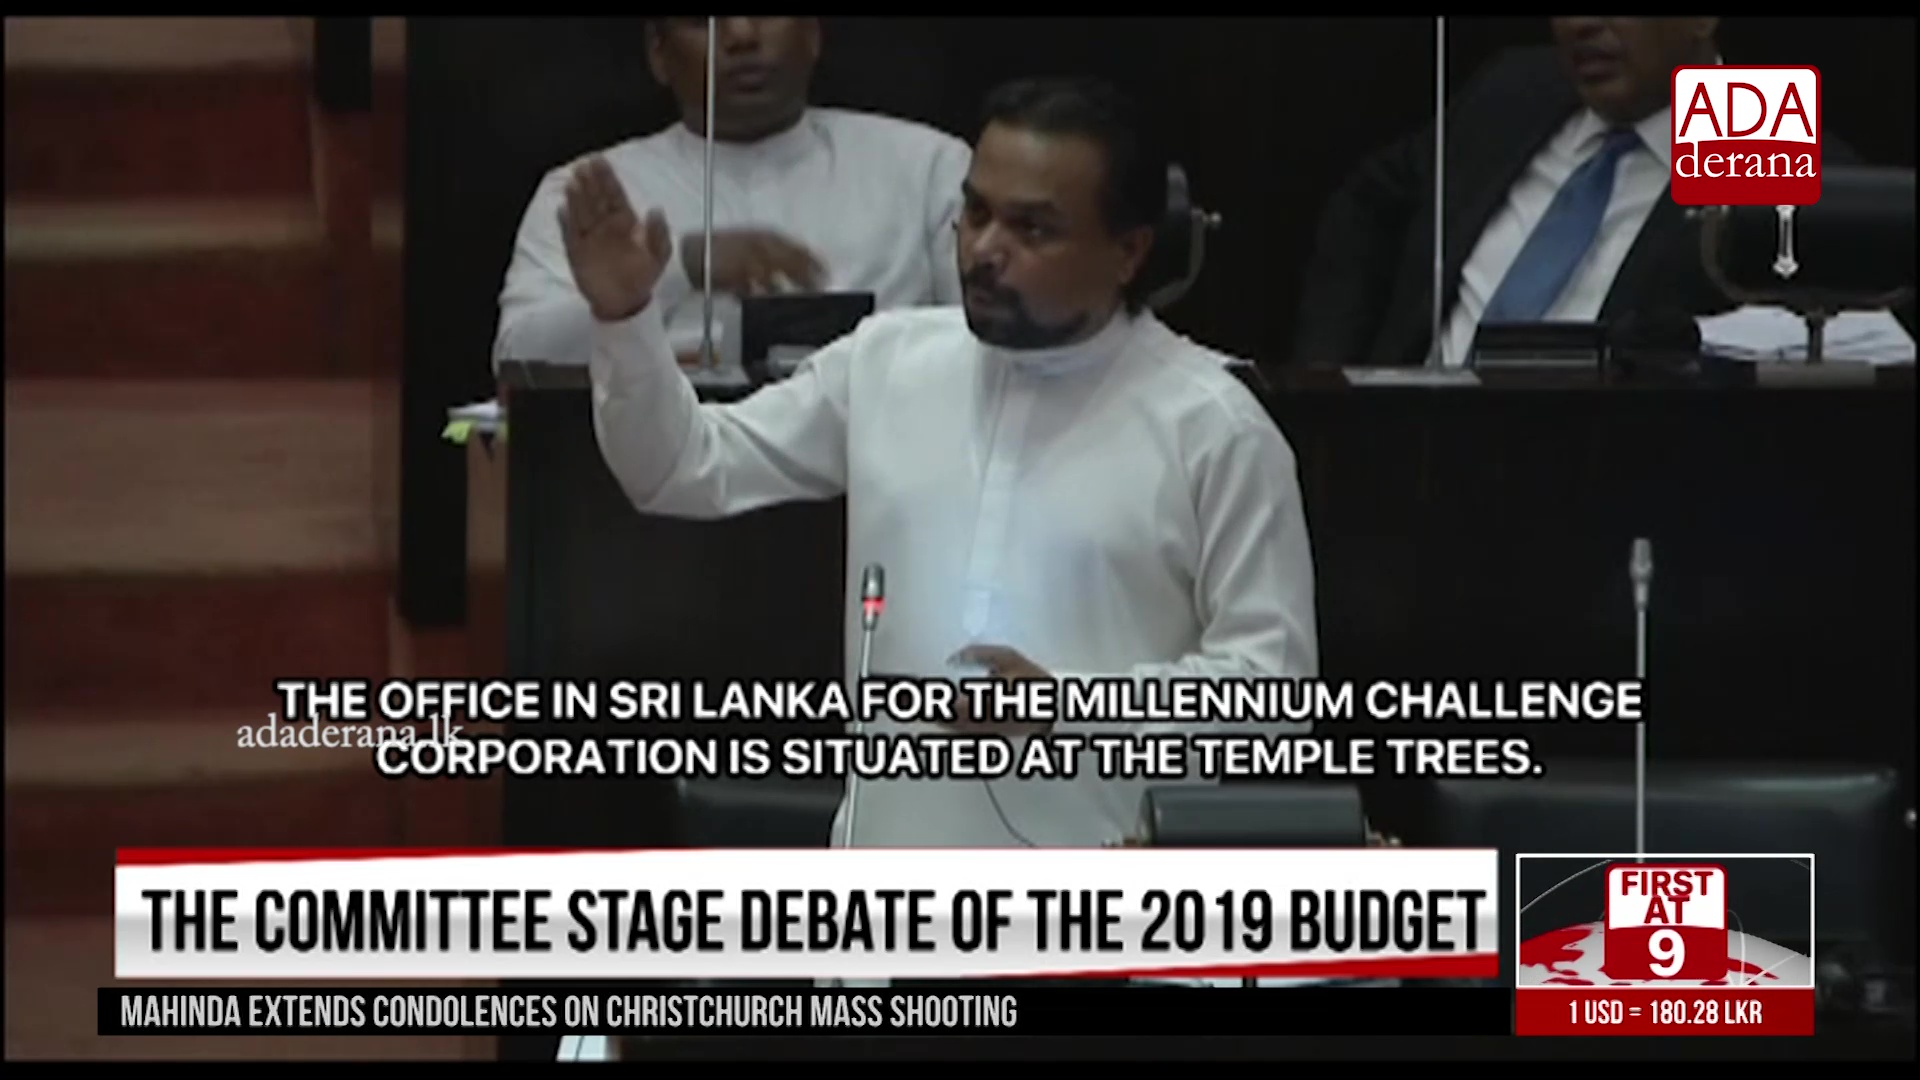 Parliamentarians comment at Committee Stage Debate of Budget 2019 (English)